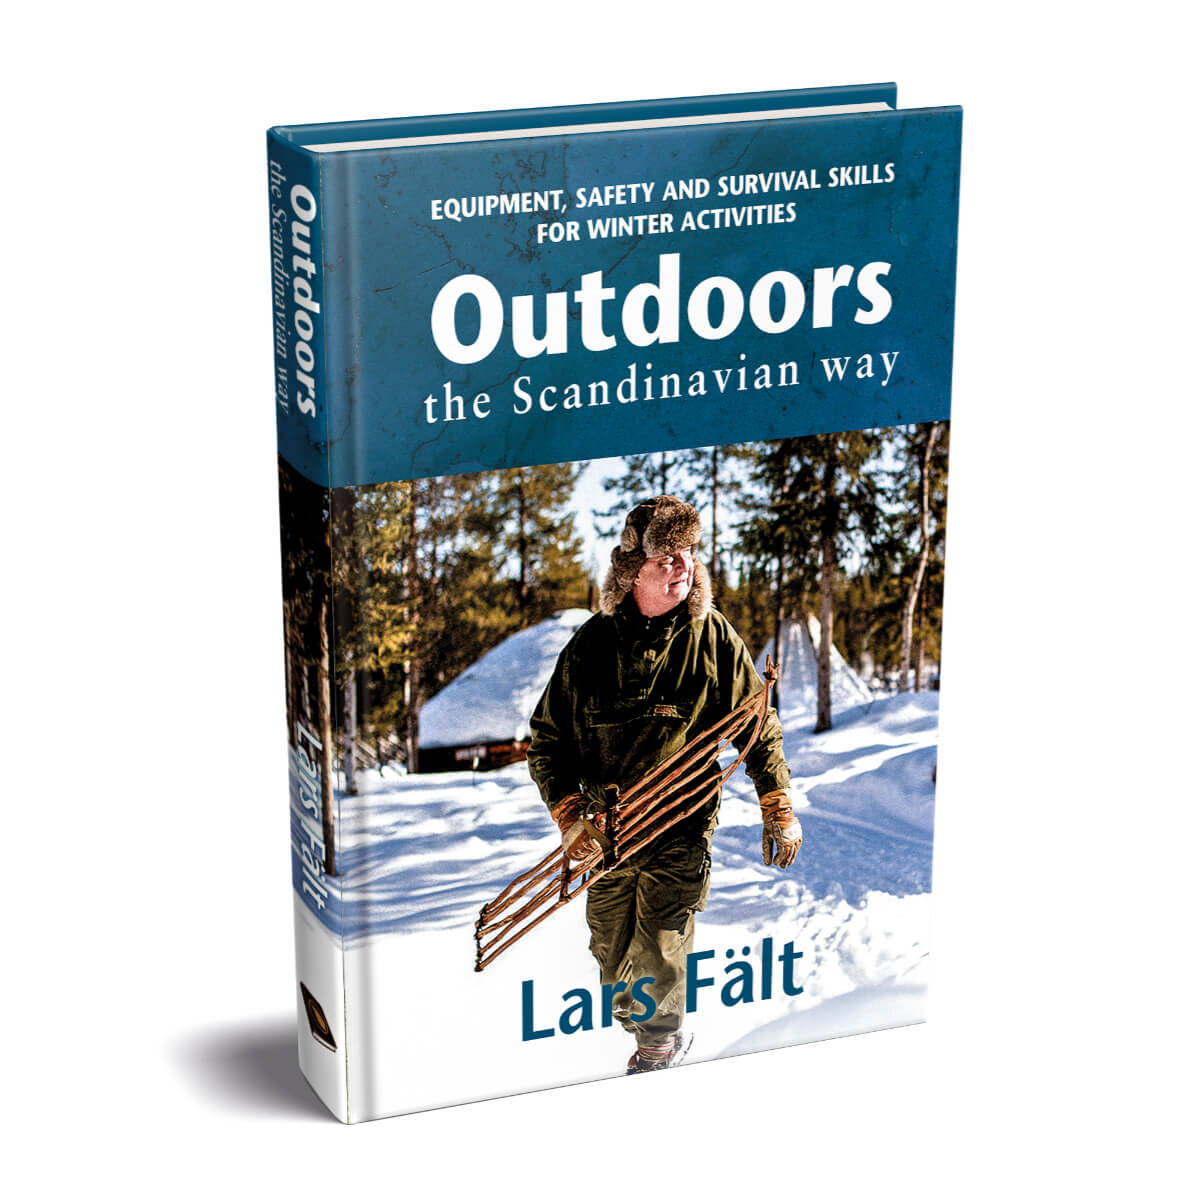 Outdoors the Scandinavian Way by Lars Falt - Winter Edition